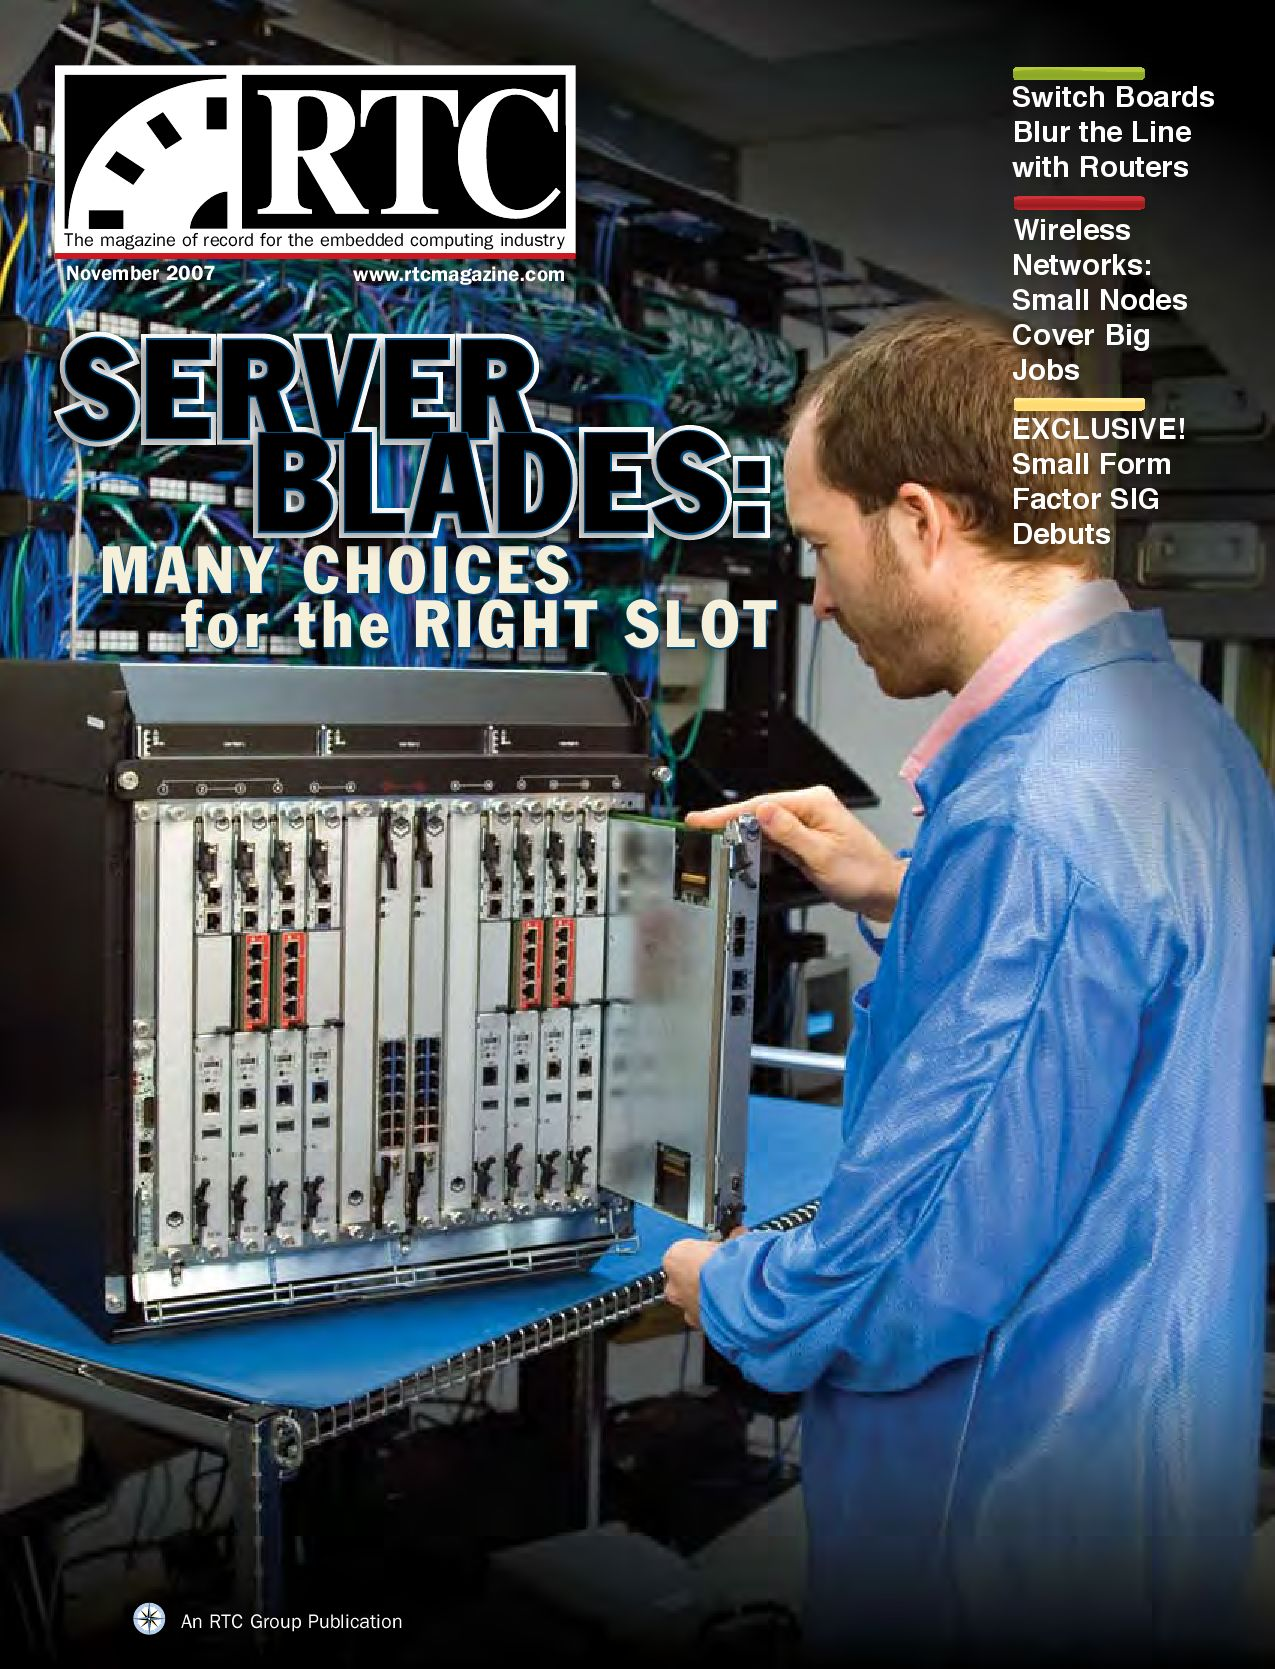 Switch Boards Blur The Line With Routers By Rtc Media Issuu Circuitboardmachinewithtechnician Commercial Editorial